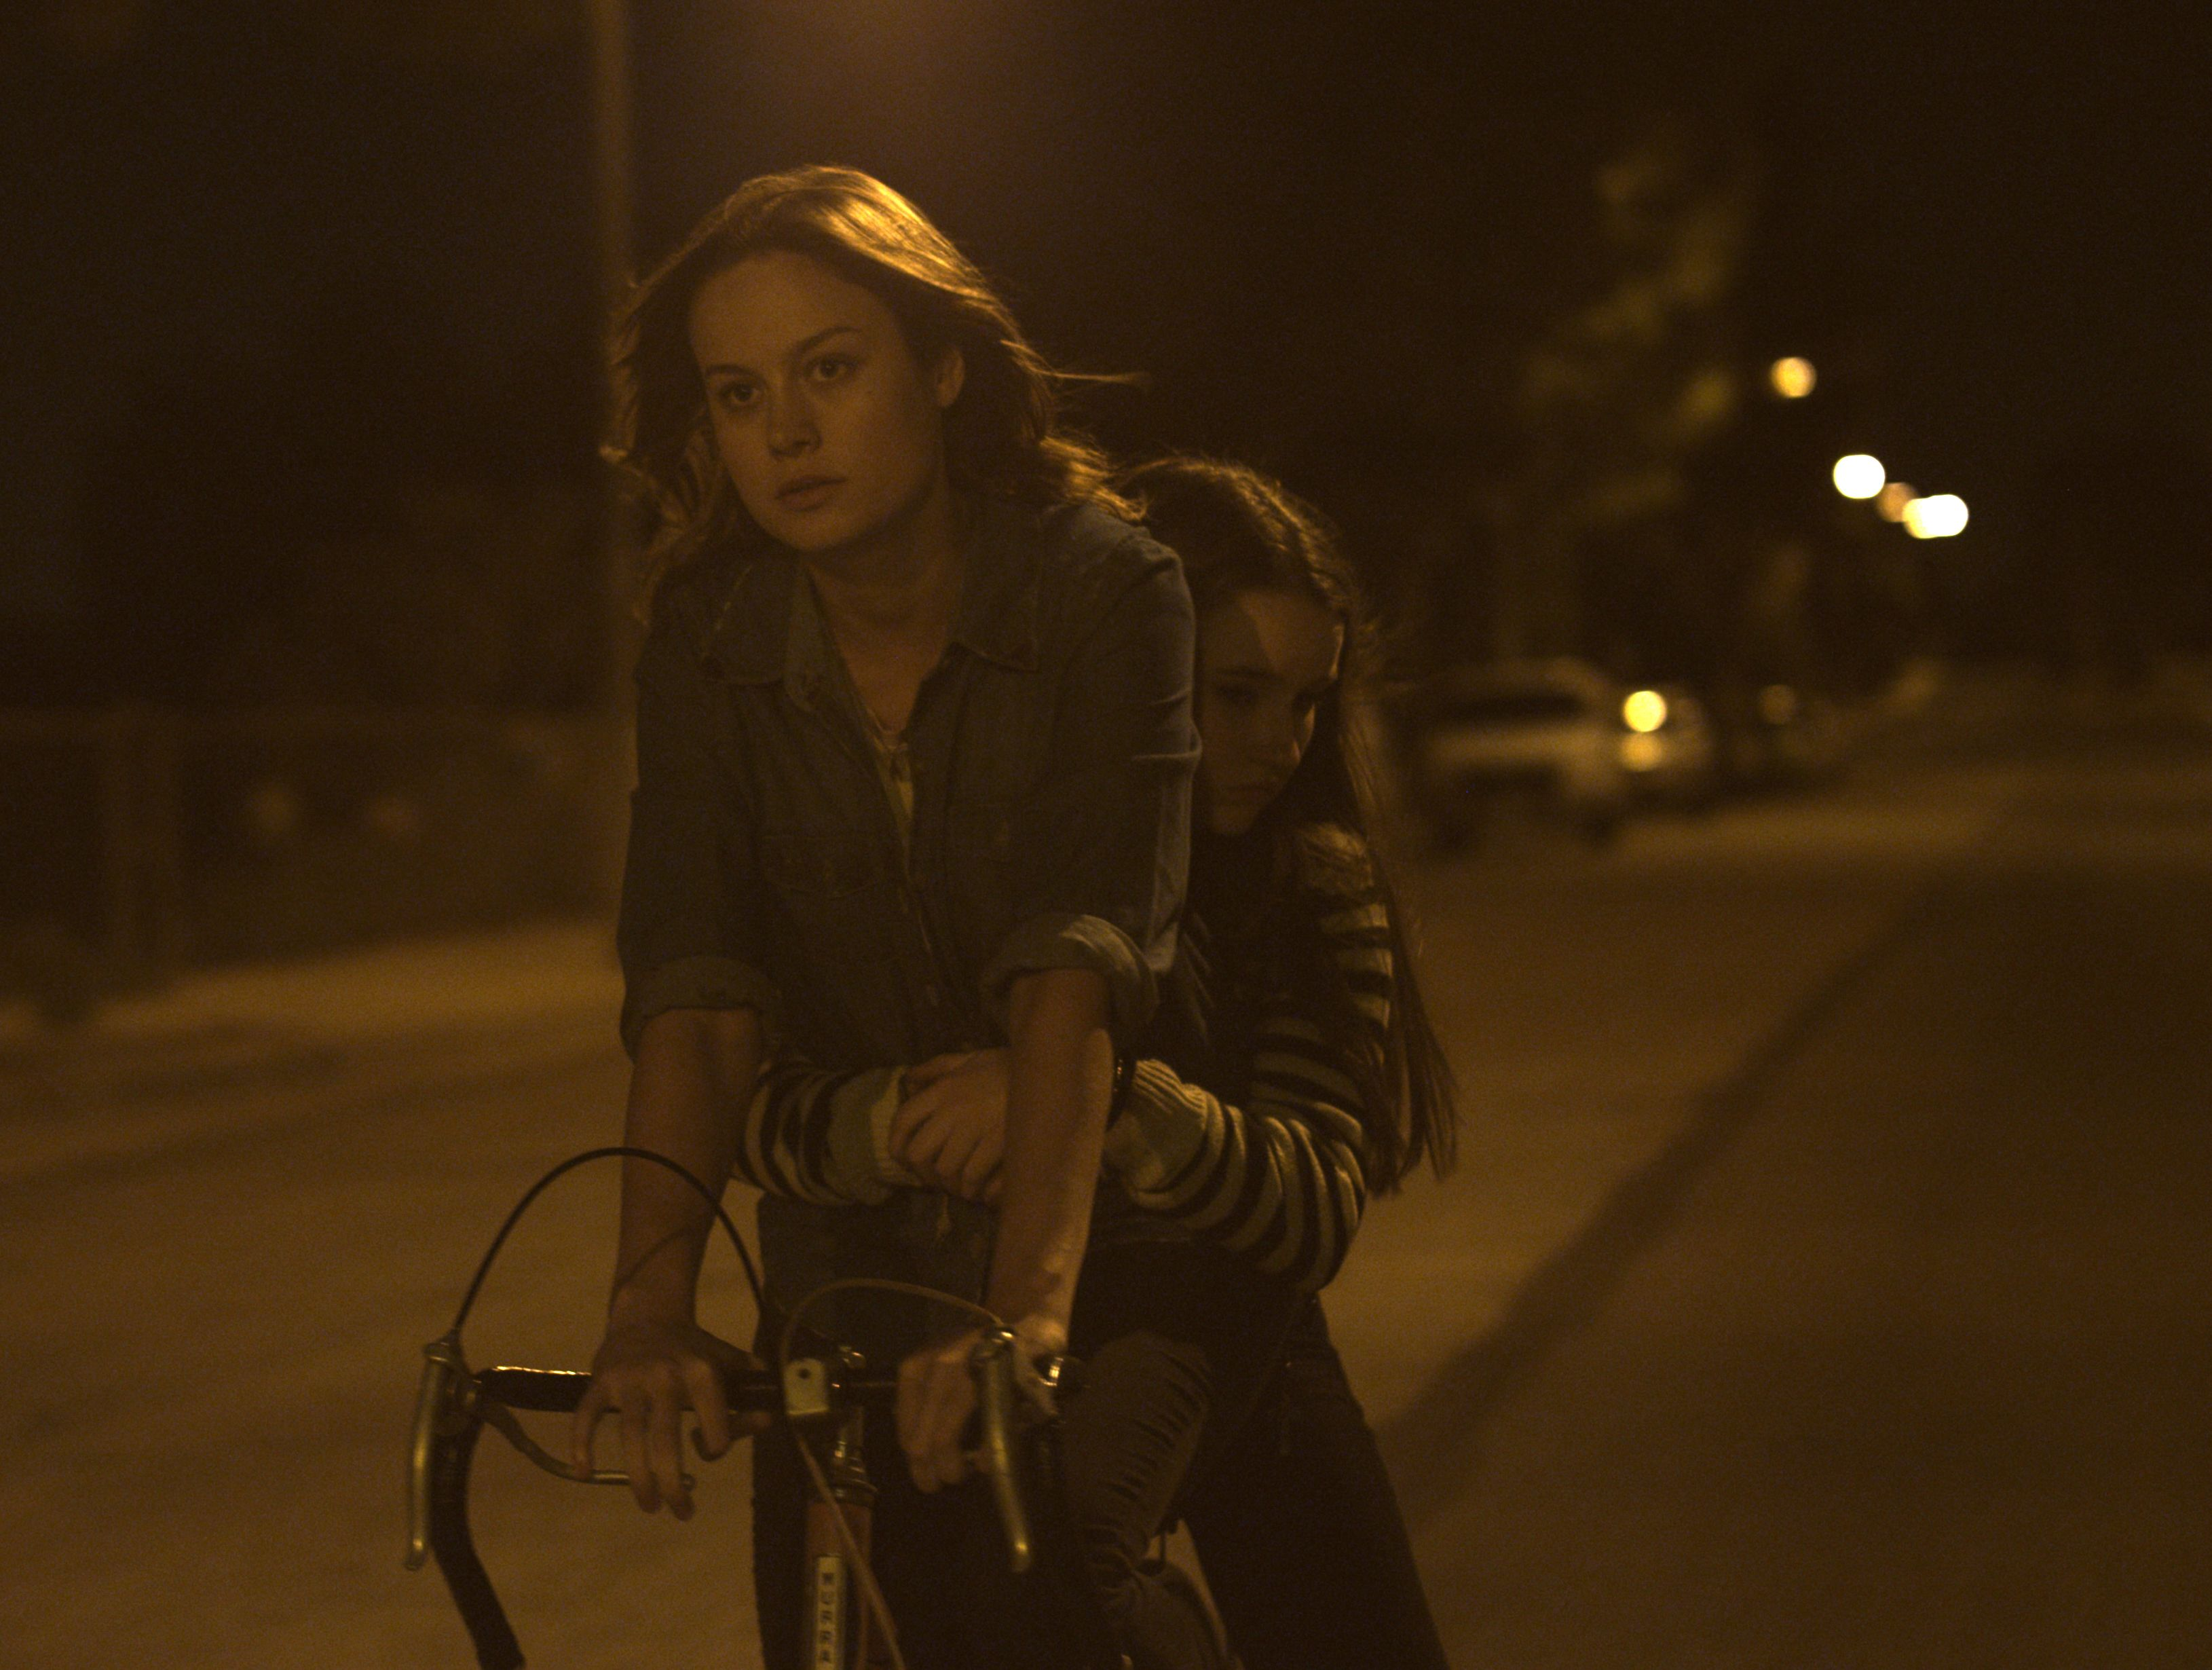 Short Term 12 at night